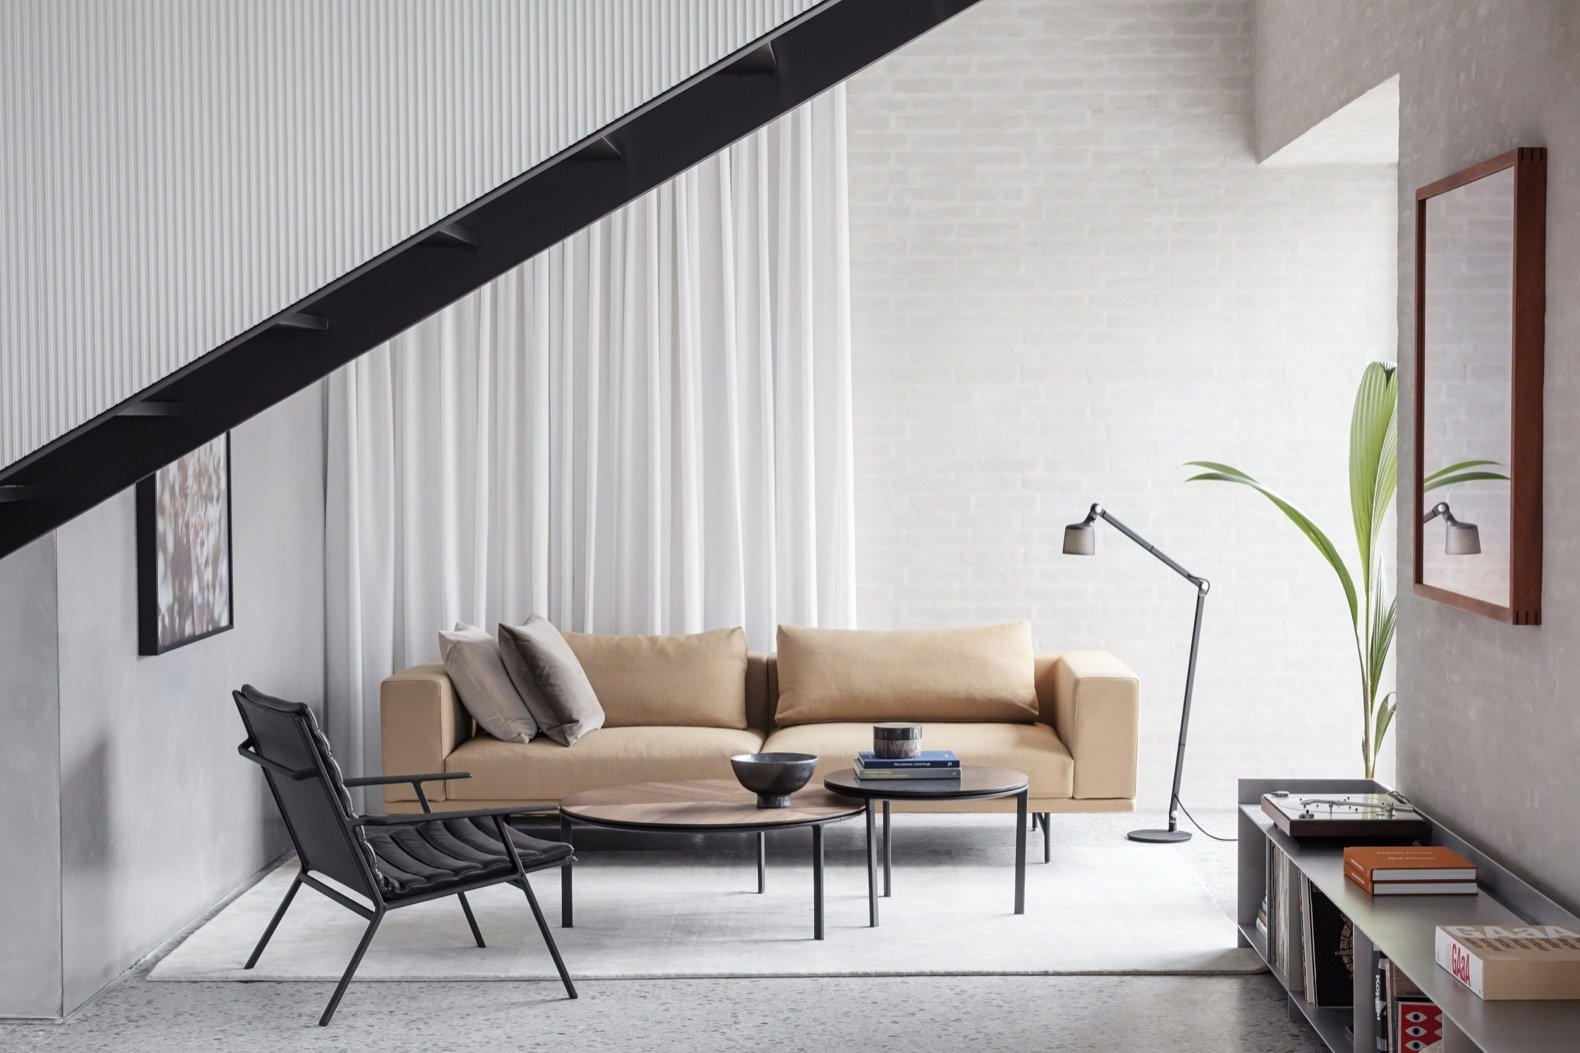 Living Room, Sofa, Terrazzo Floor, Floor Lighting, Chair, and Coffee Tables The light-filled living area is dressed with a Vipp Shelter lounge stol (available in Fall 2019), the Vipp Loft Sofa ($6,795), and a Vipp Floor Reading Lamp ($600).  Best Photos from Vipp's Newest High-Design Hotel Outpost Is in a Water-Pumping Station